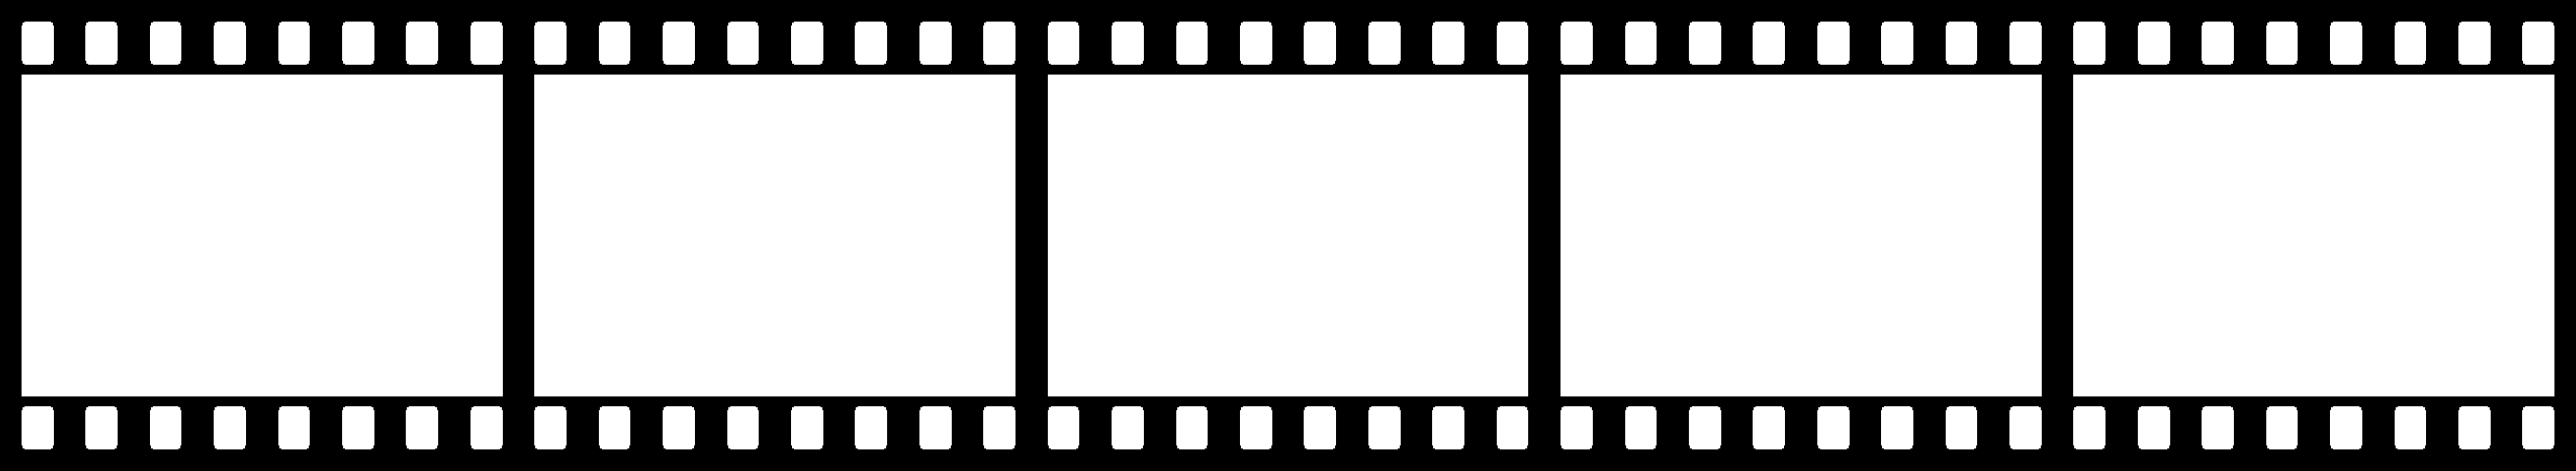 14 Movie Film Strip Free Cliparts That You Can Download To You #1HDghJ ...